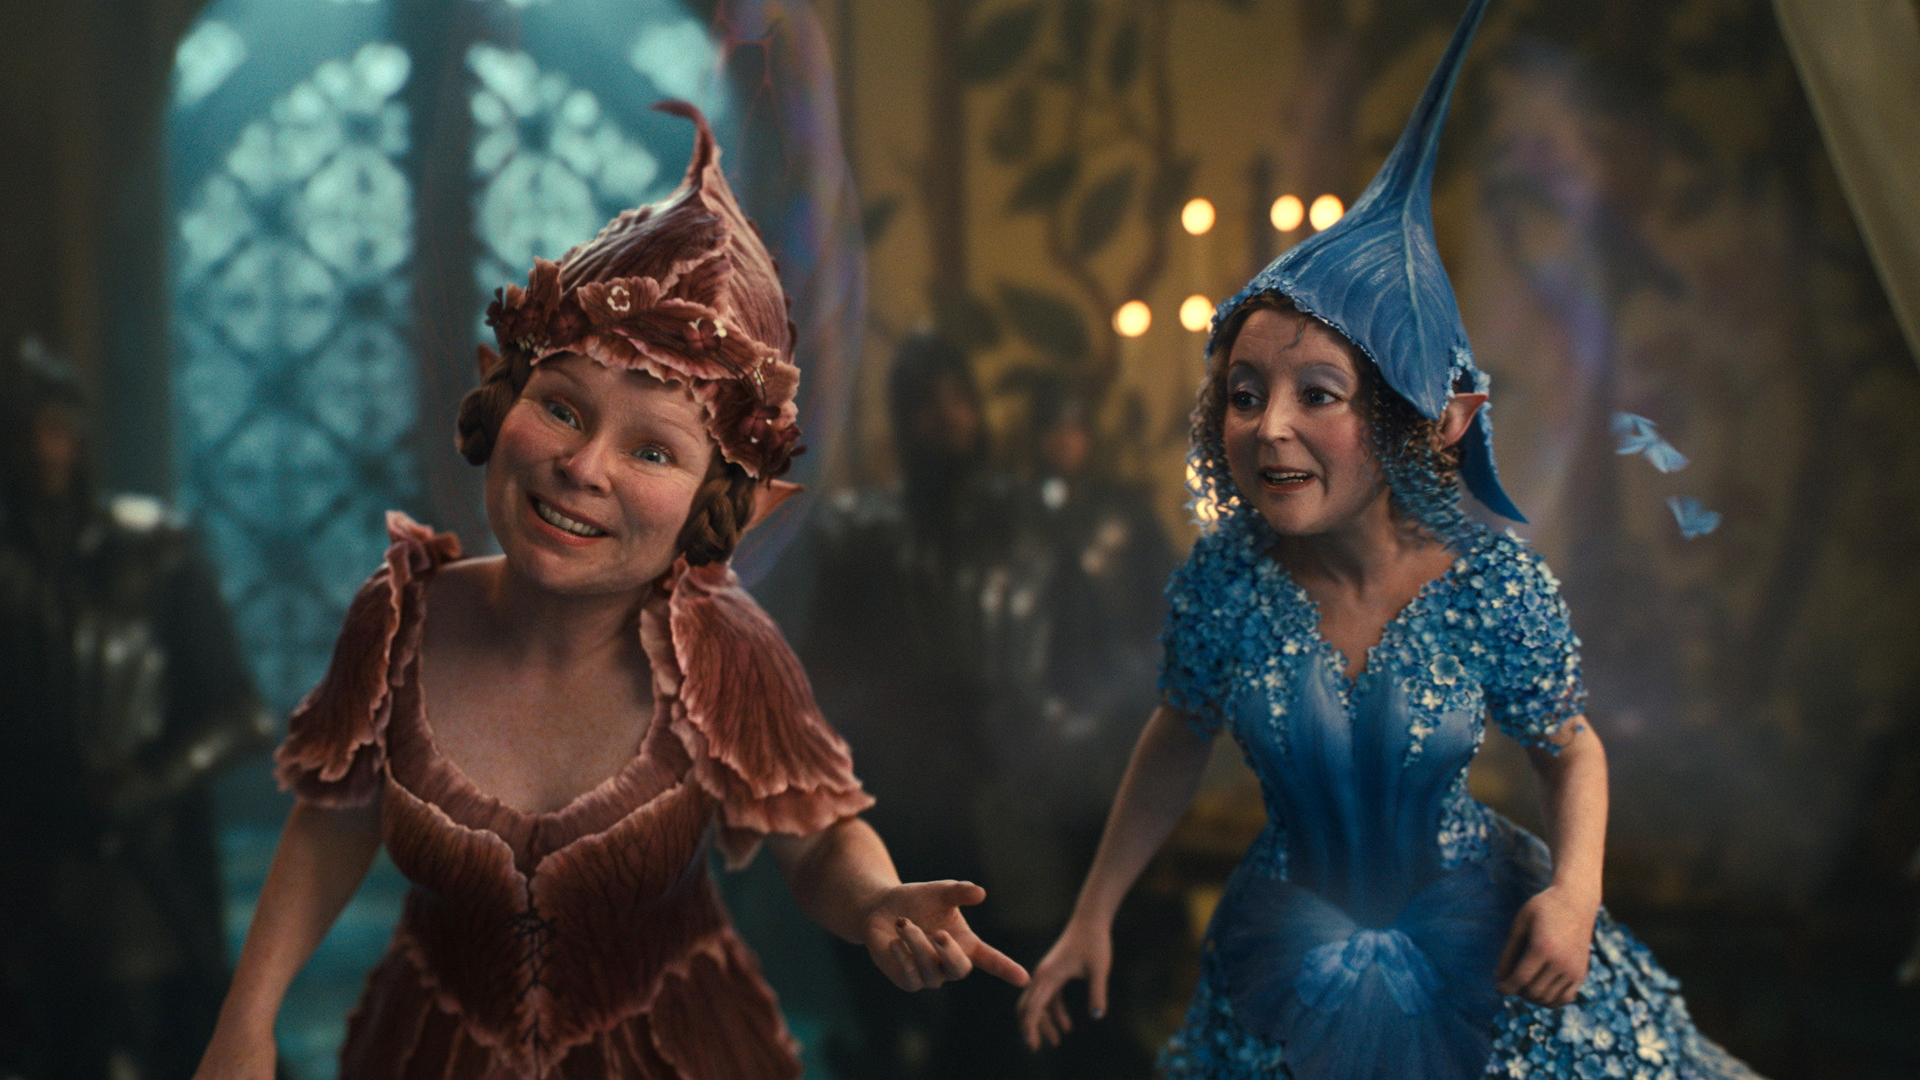 fairies movies images - photo #3